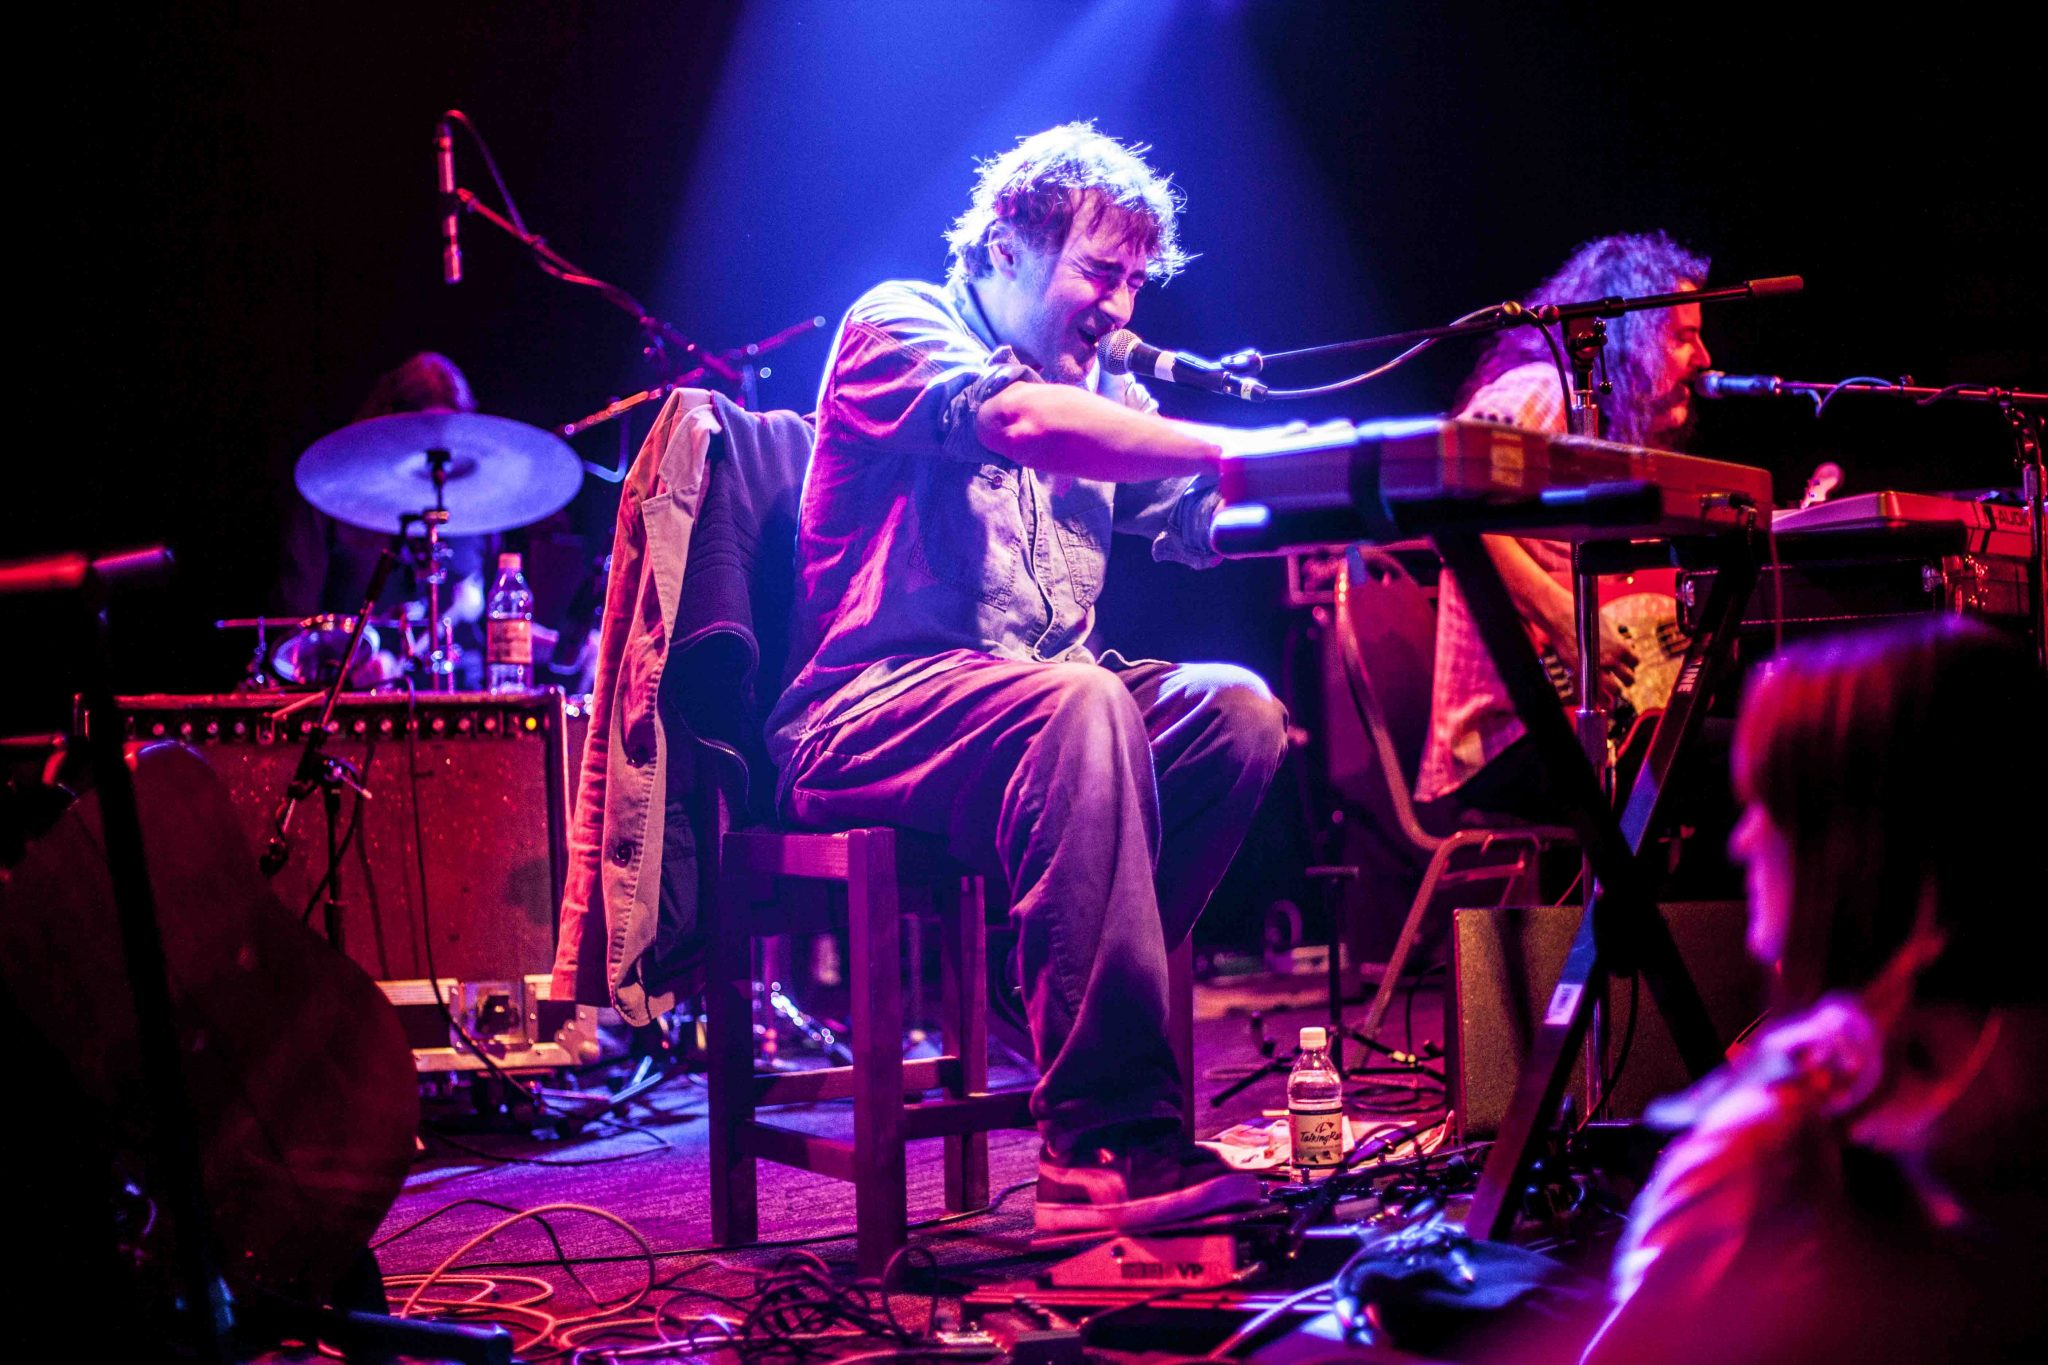 Califone at The Crocodile (Photo by Daniel Ahrendt)